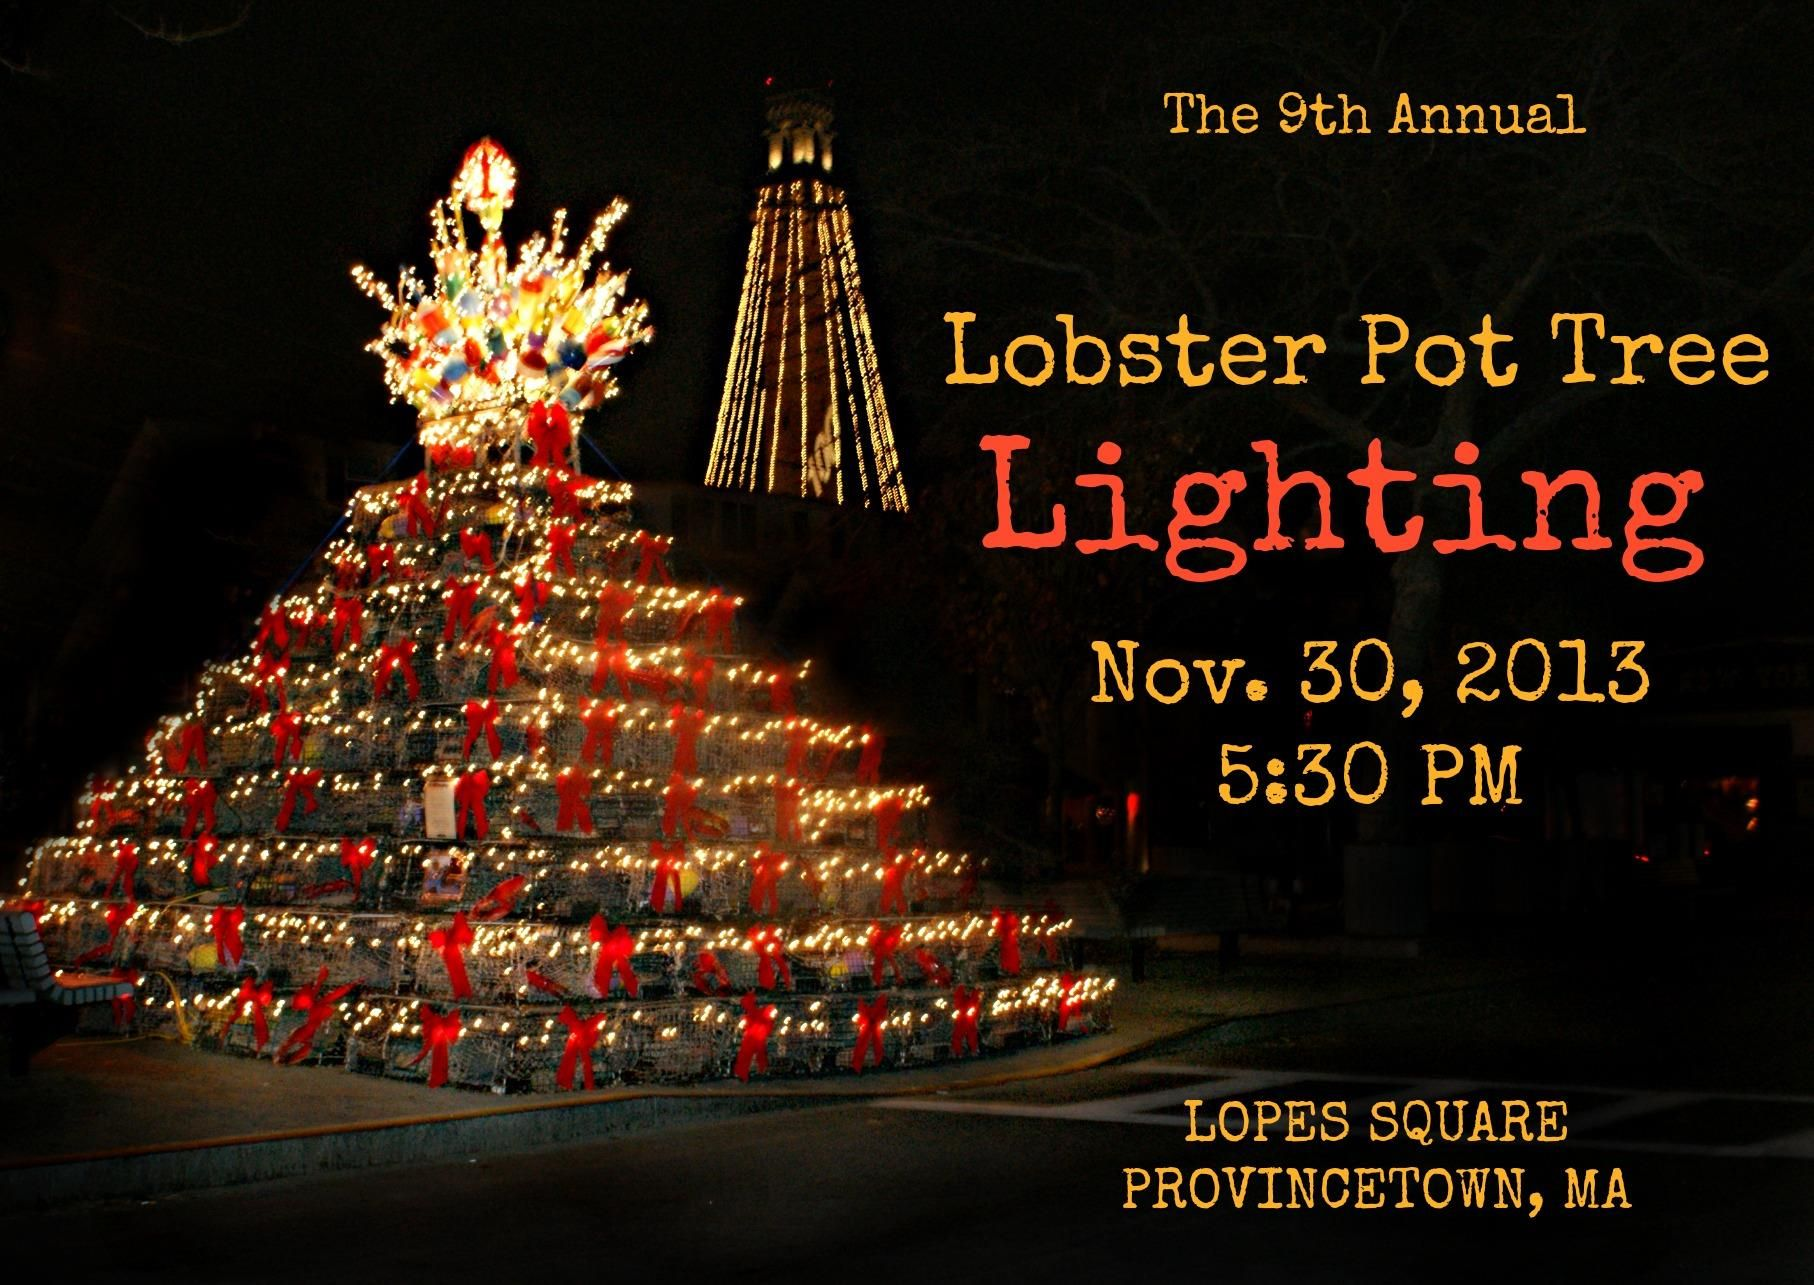 Lobster Pot Tree Lighting 2013   Potted trees, Tree lighting, Cape cod vacation rentals